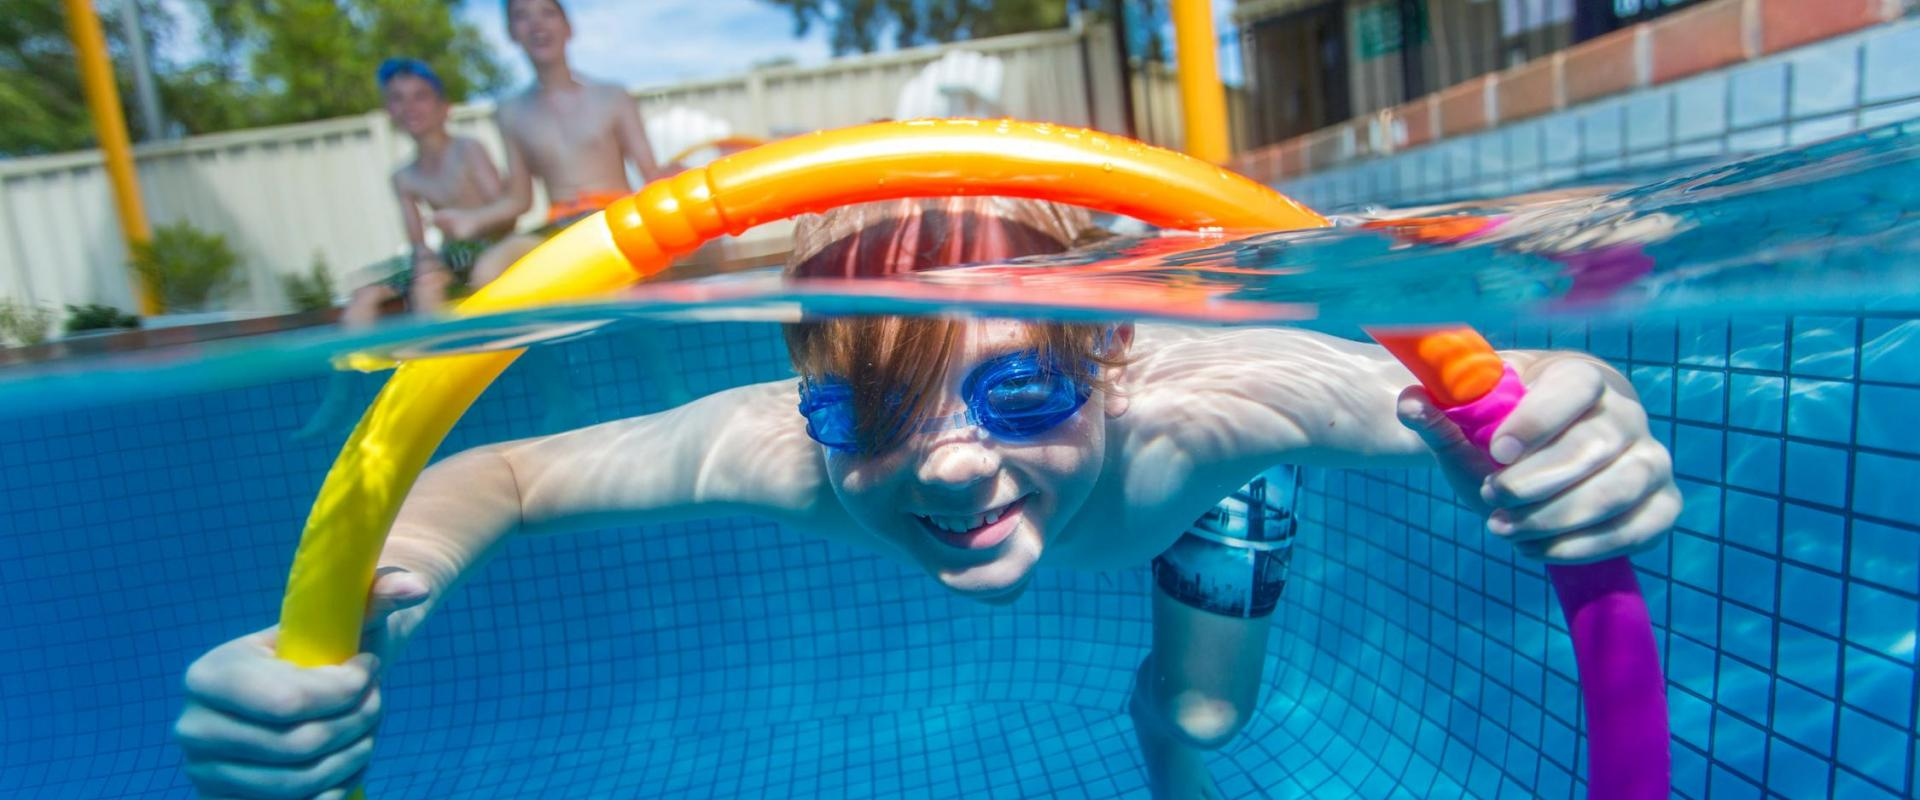 BIG4 Shepparton Park Lane Holiday Park - Boy in pool